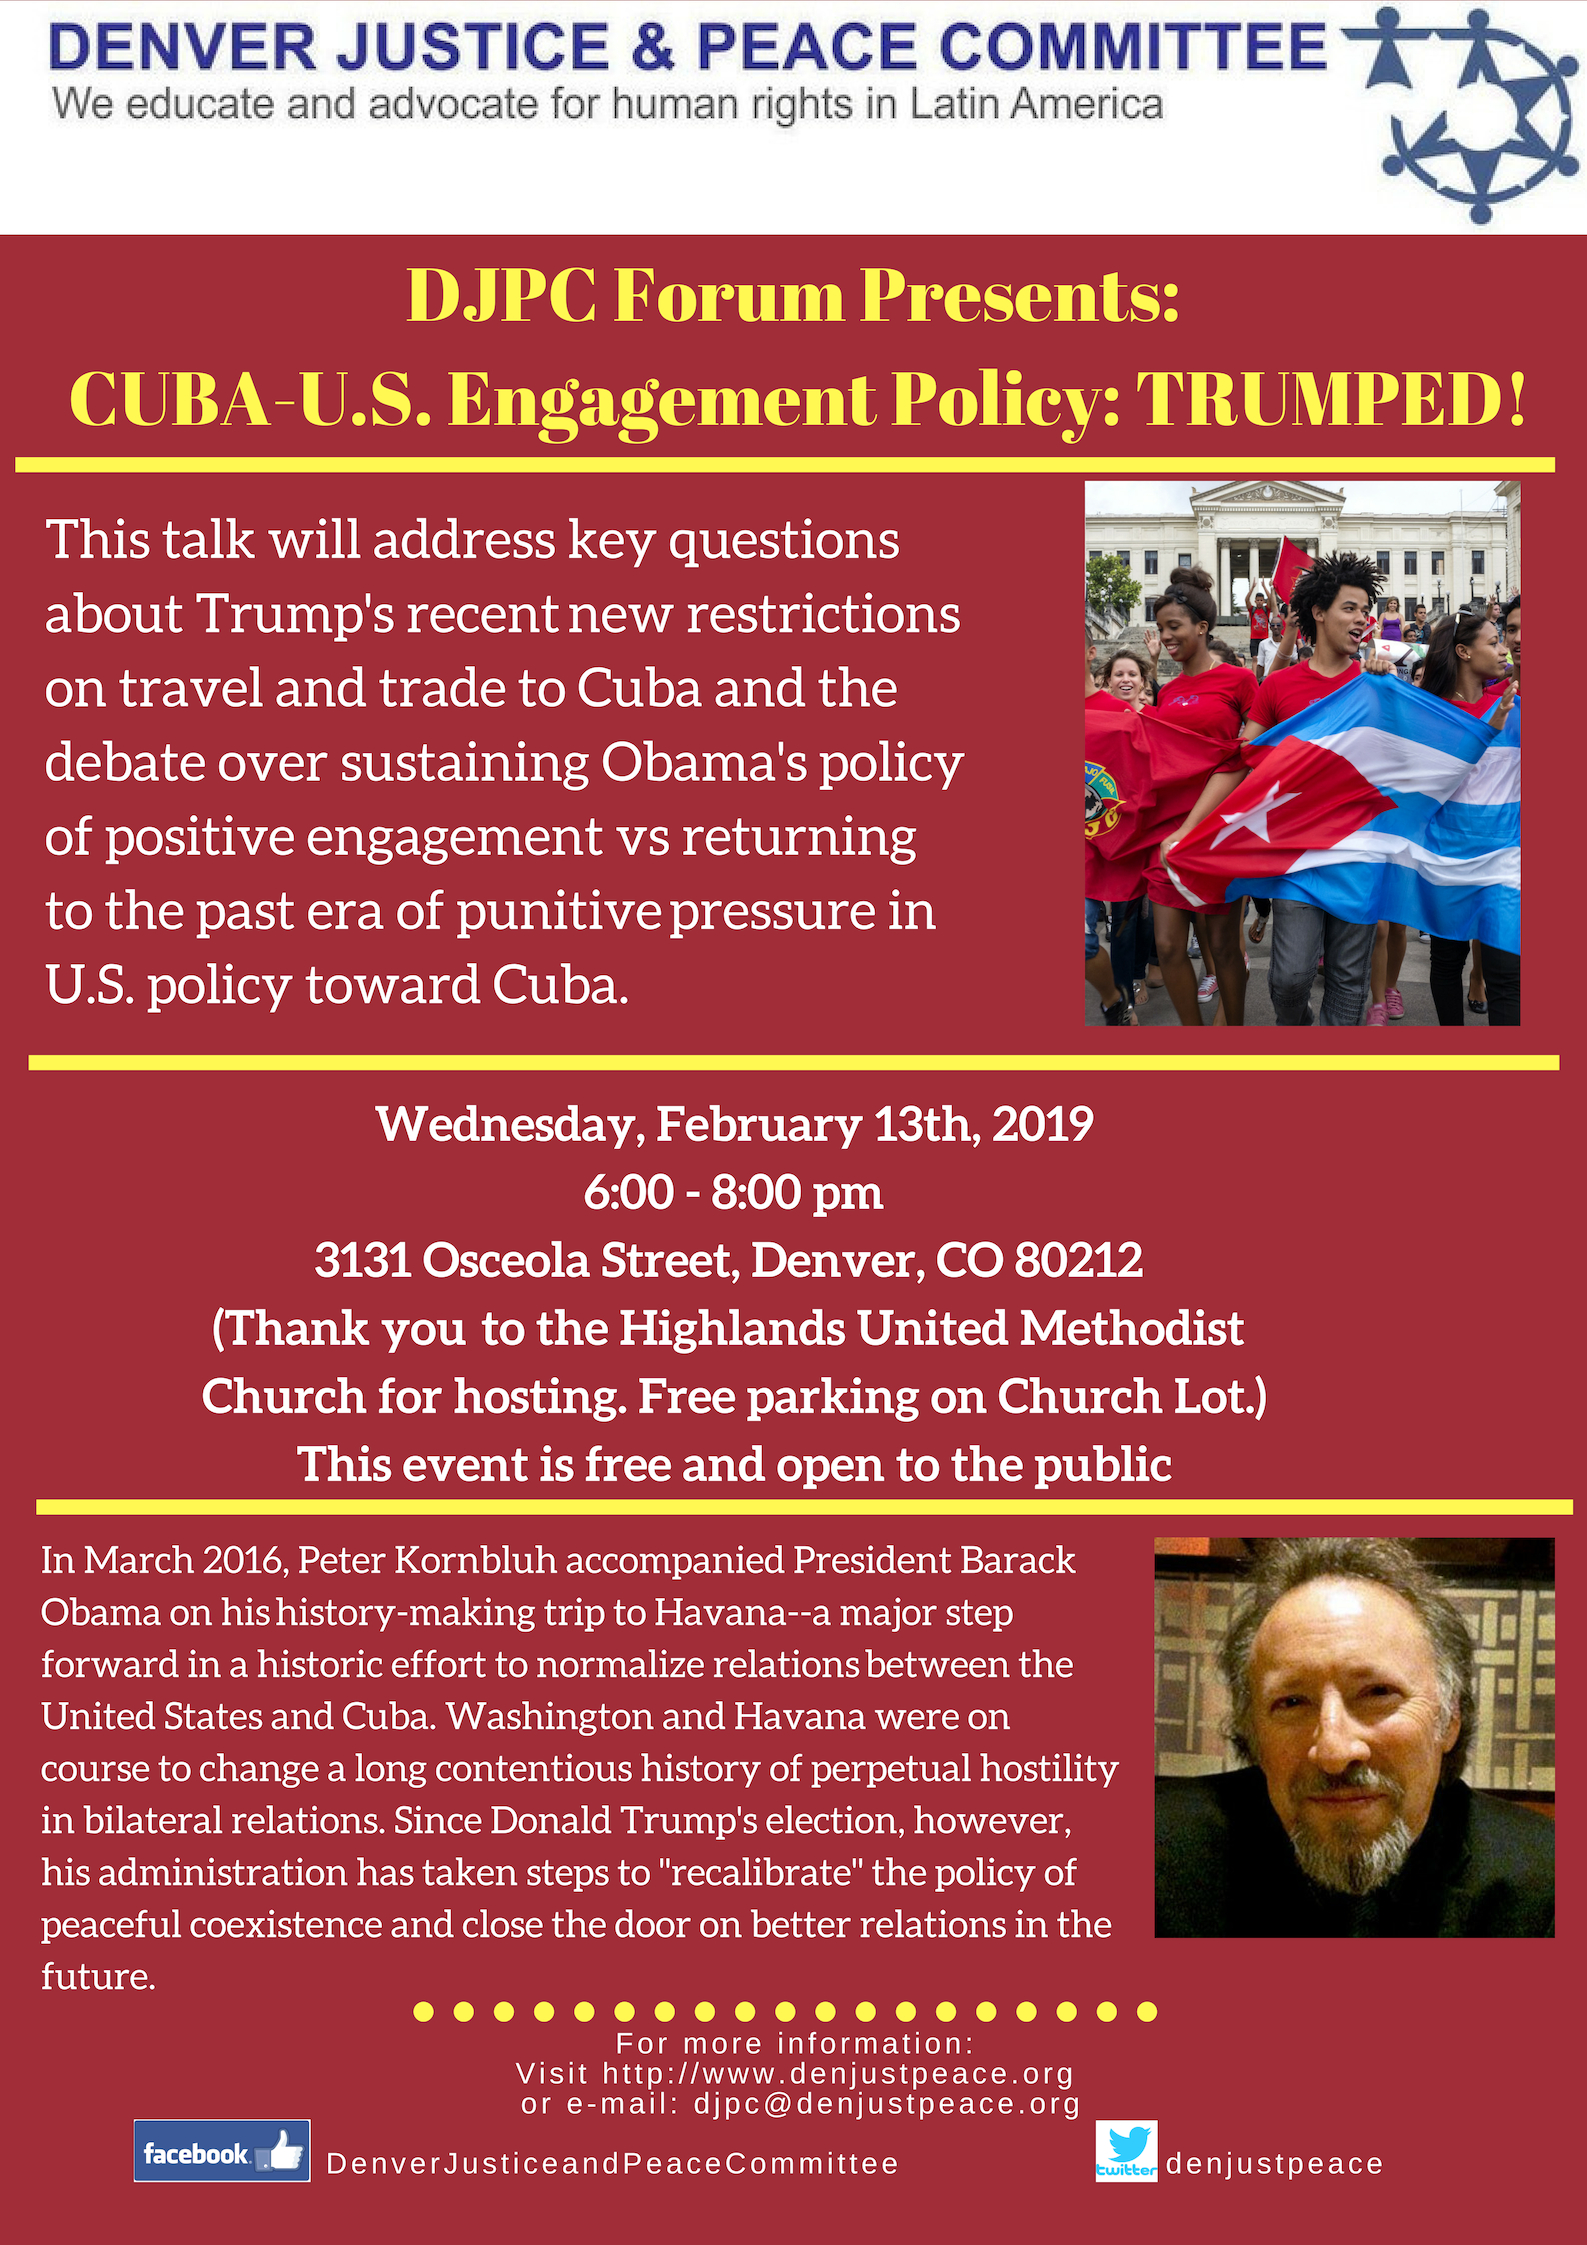 DJPC Forum: Cuba-USA. Engagement Policy: Trumped!